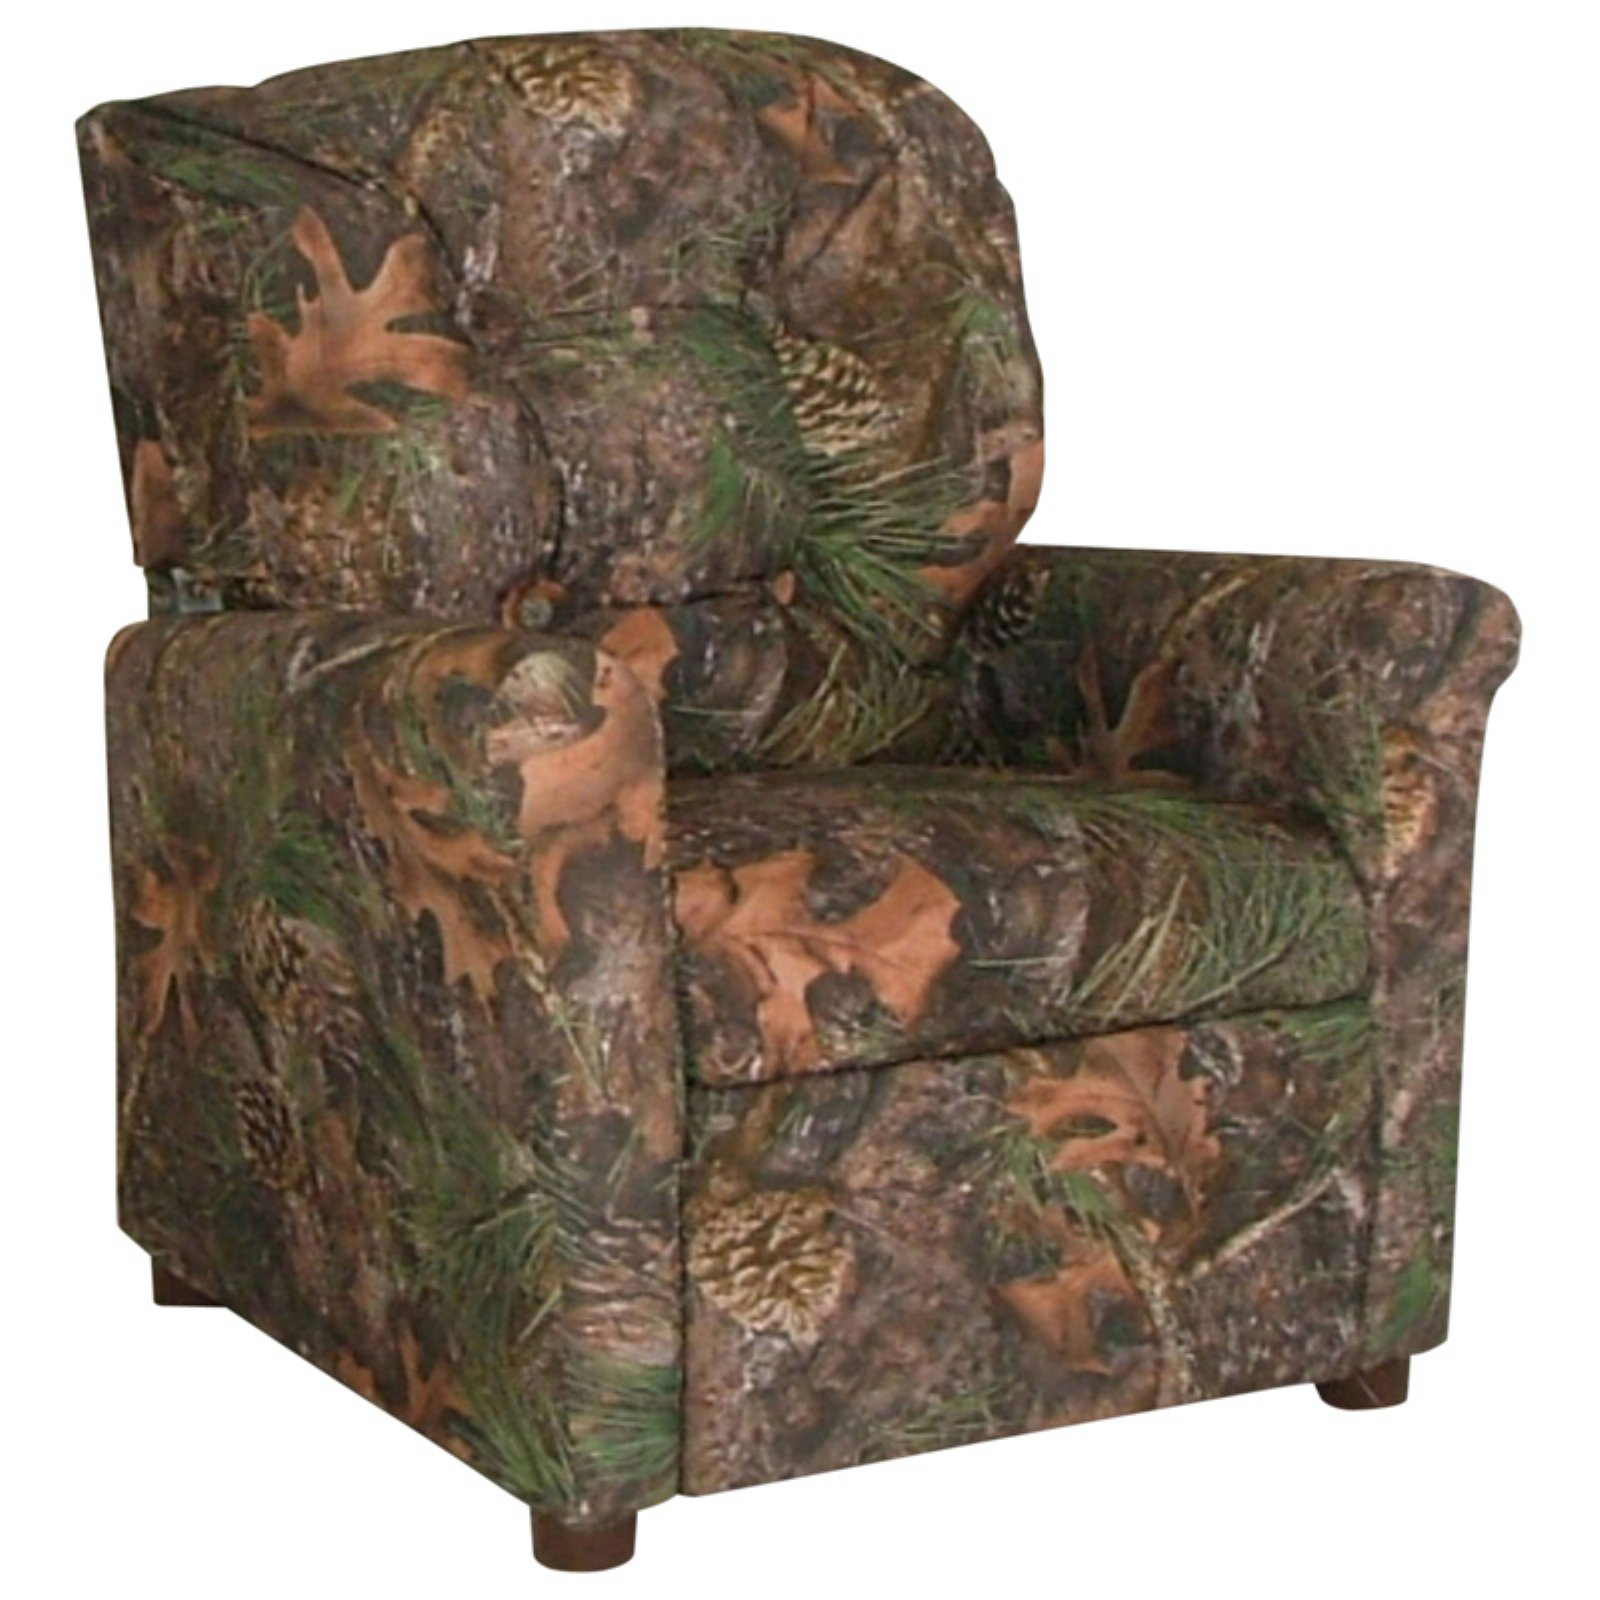 Dozydotes 4-Button Kid Recliner - Camouflage Brown